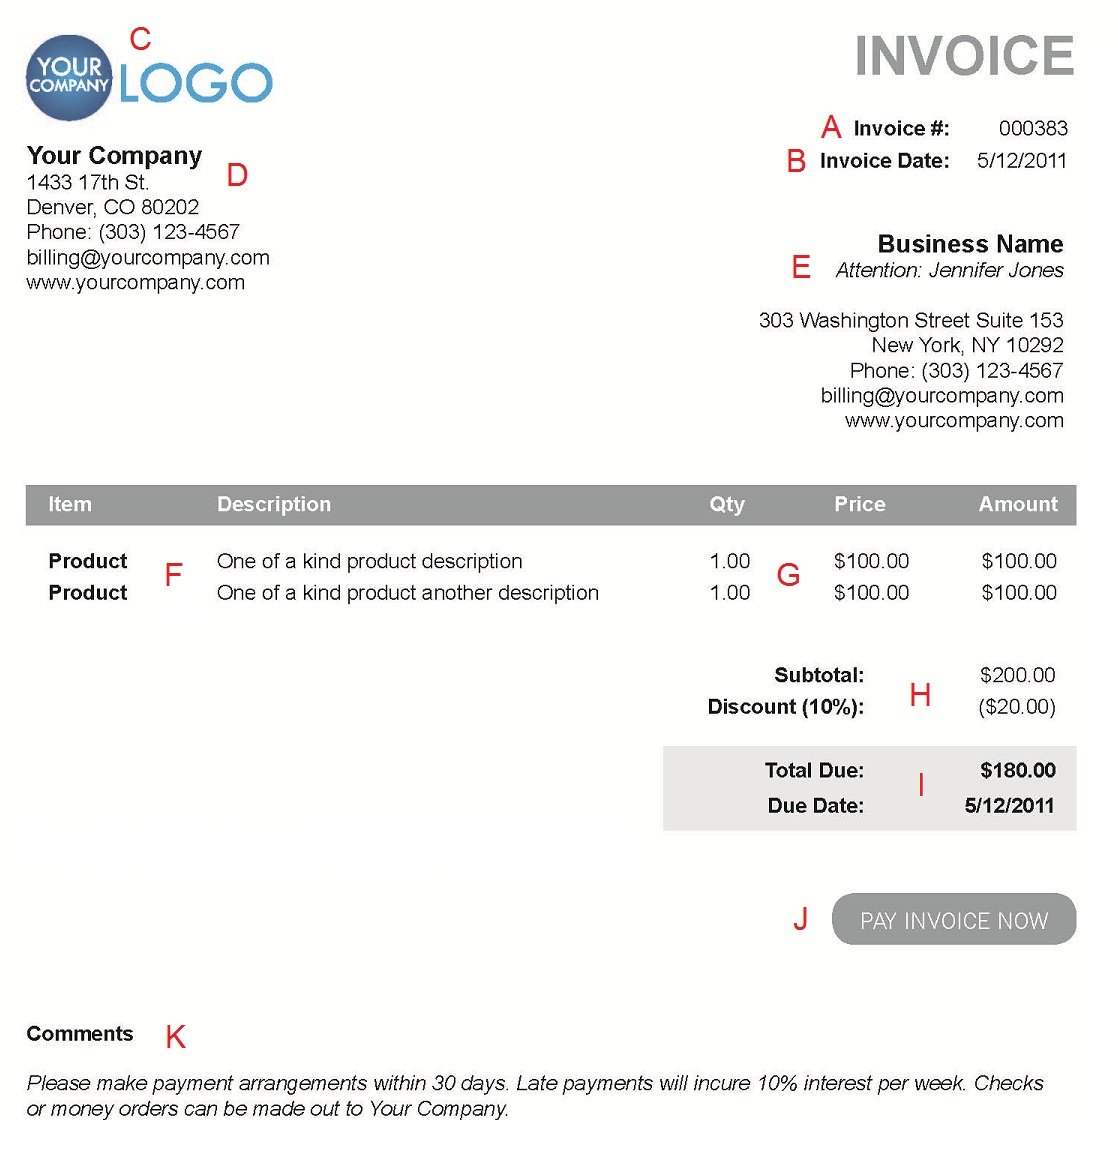 Occupyhistoryus  Prepossessing The  Different Sections Of An Electronic Payment Invoice With Heavenly A  With Divine Fedex Pay Invoice Also Basic Invoice Template Word In Addition Invoice Download And Customer Invoice As Well As Invoice Printer Additionally Ford Invoice Price From Paysimplecom With Occupyhistoryus  Heavenly The  Different Sections Of An Electronic Payment Invoice With Divine A  And Prepossessing Fedex Pay Invoice Also Basic Invoice Template Word In Addition Invoice Download From Paysimplecom